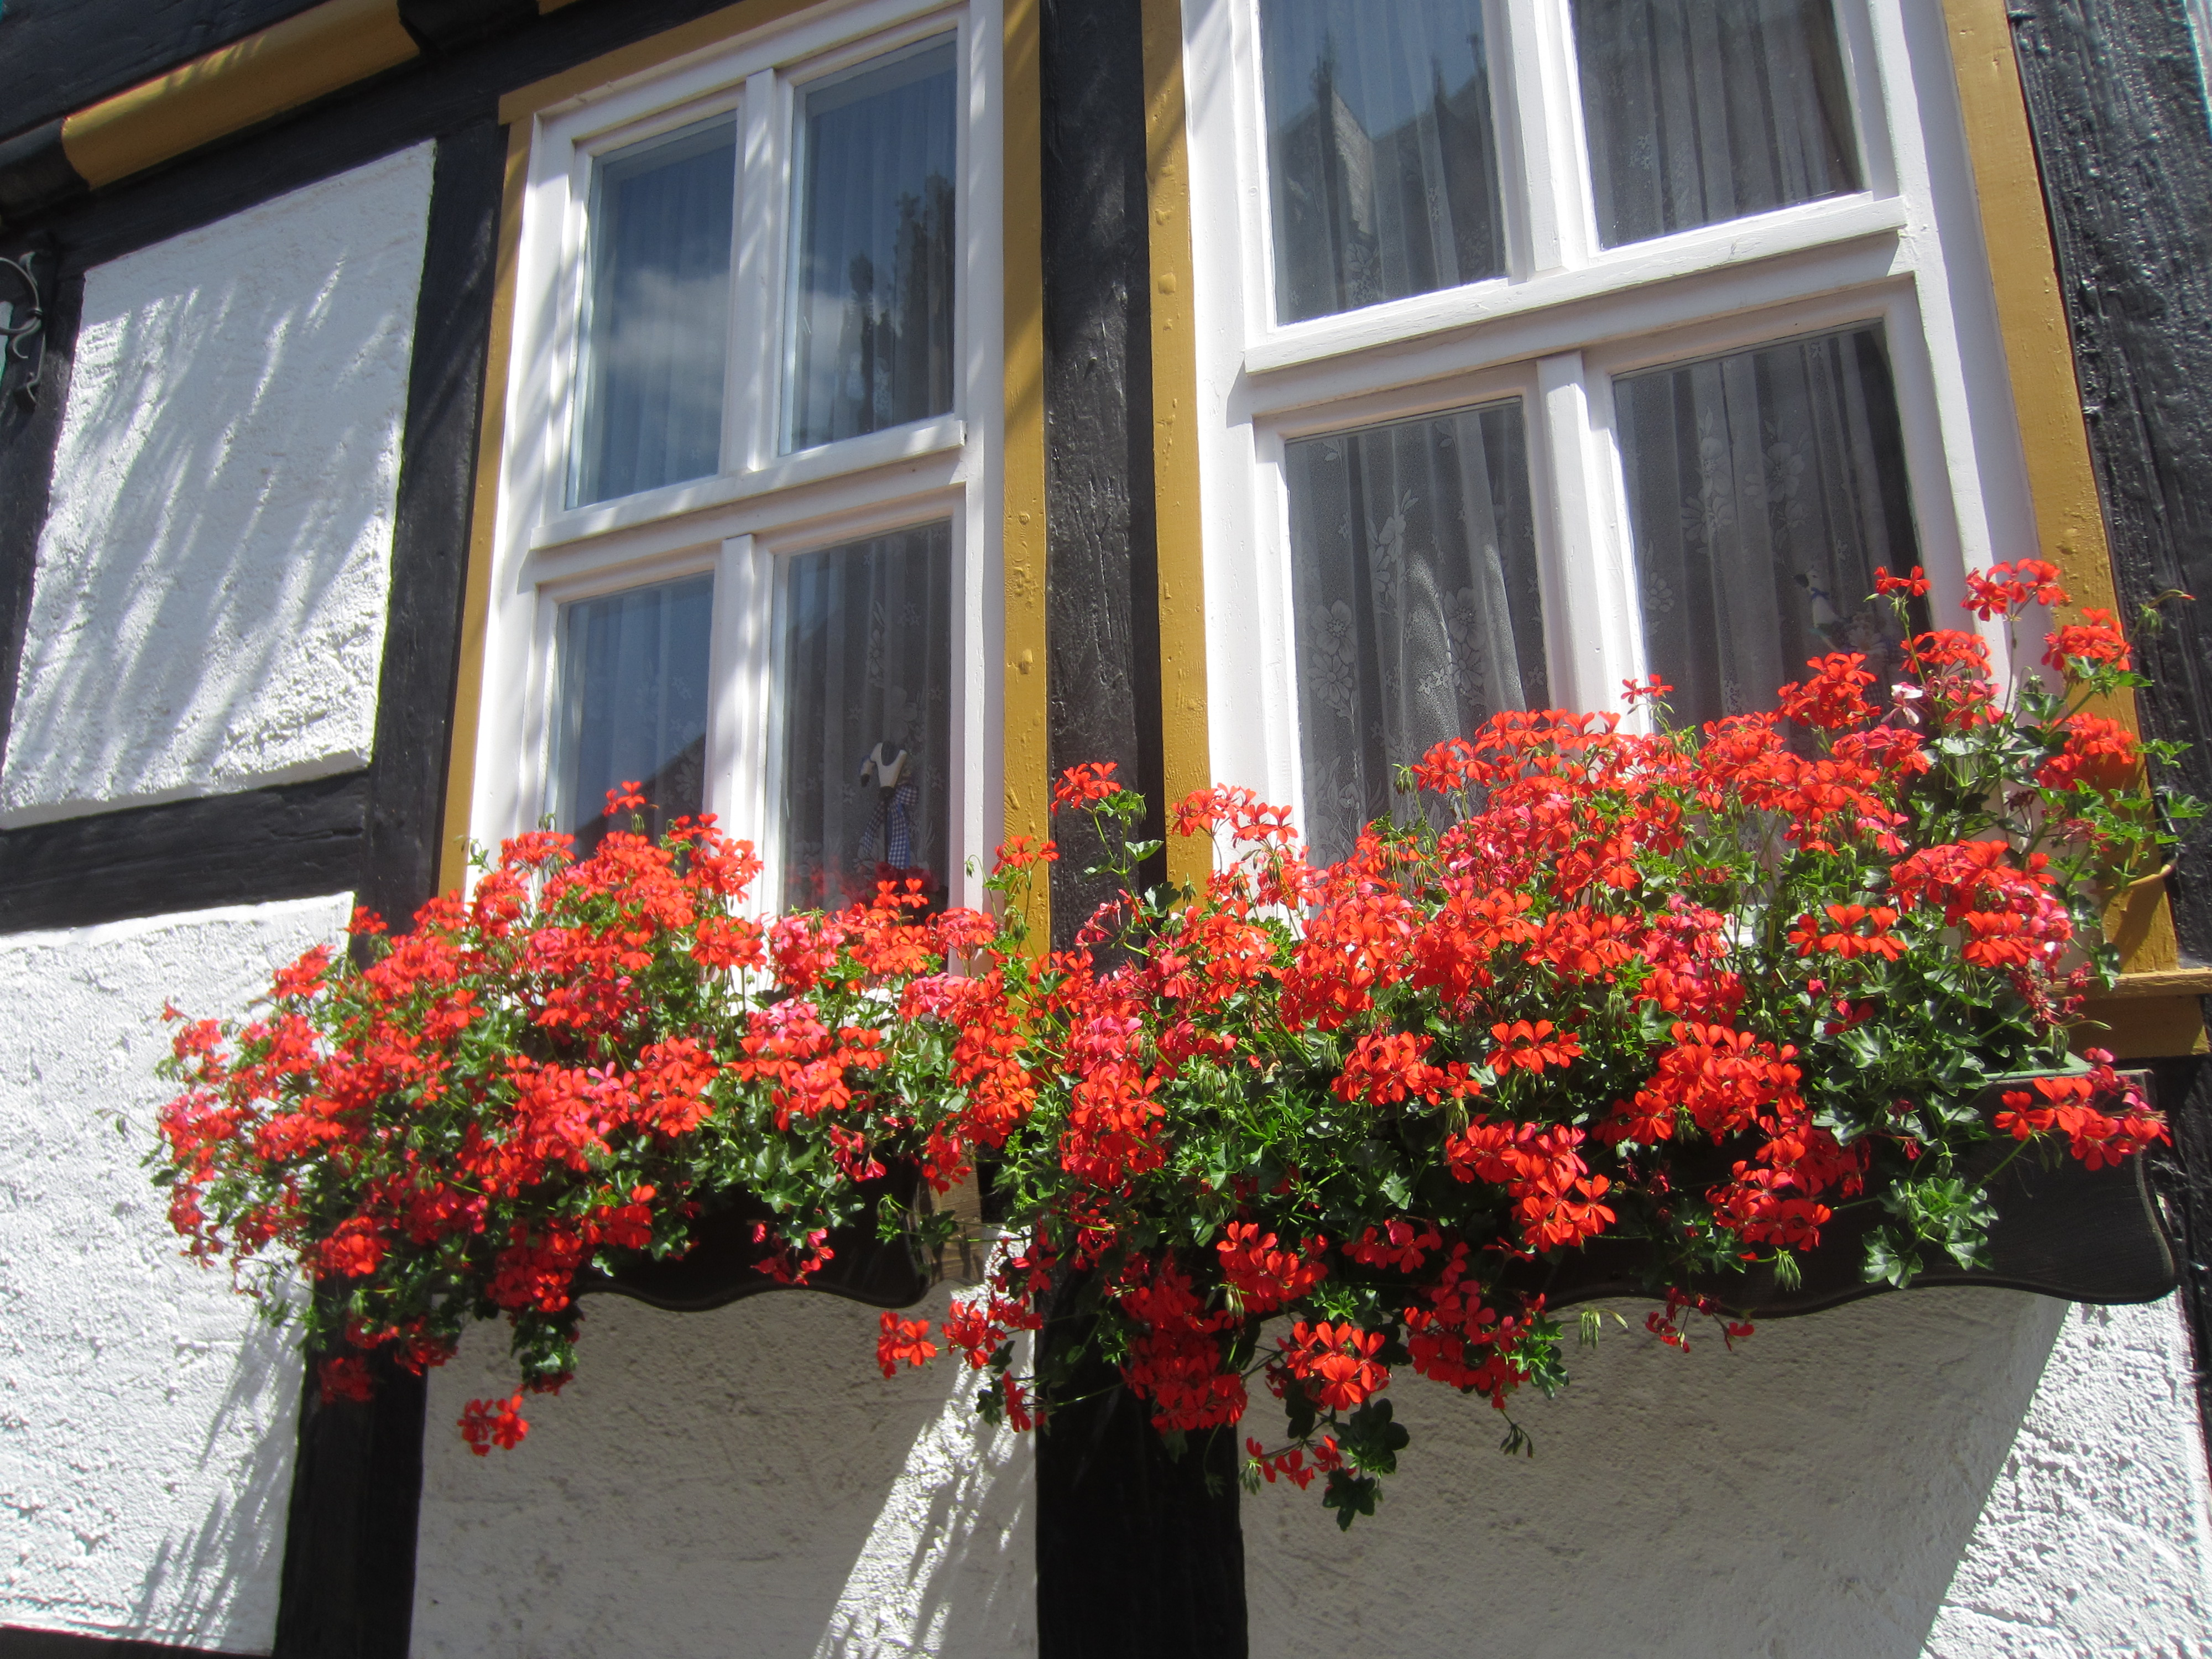 German Window Boxes Popular For Window Boxes